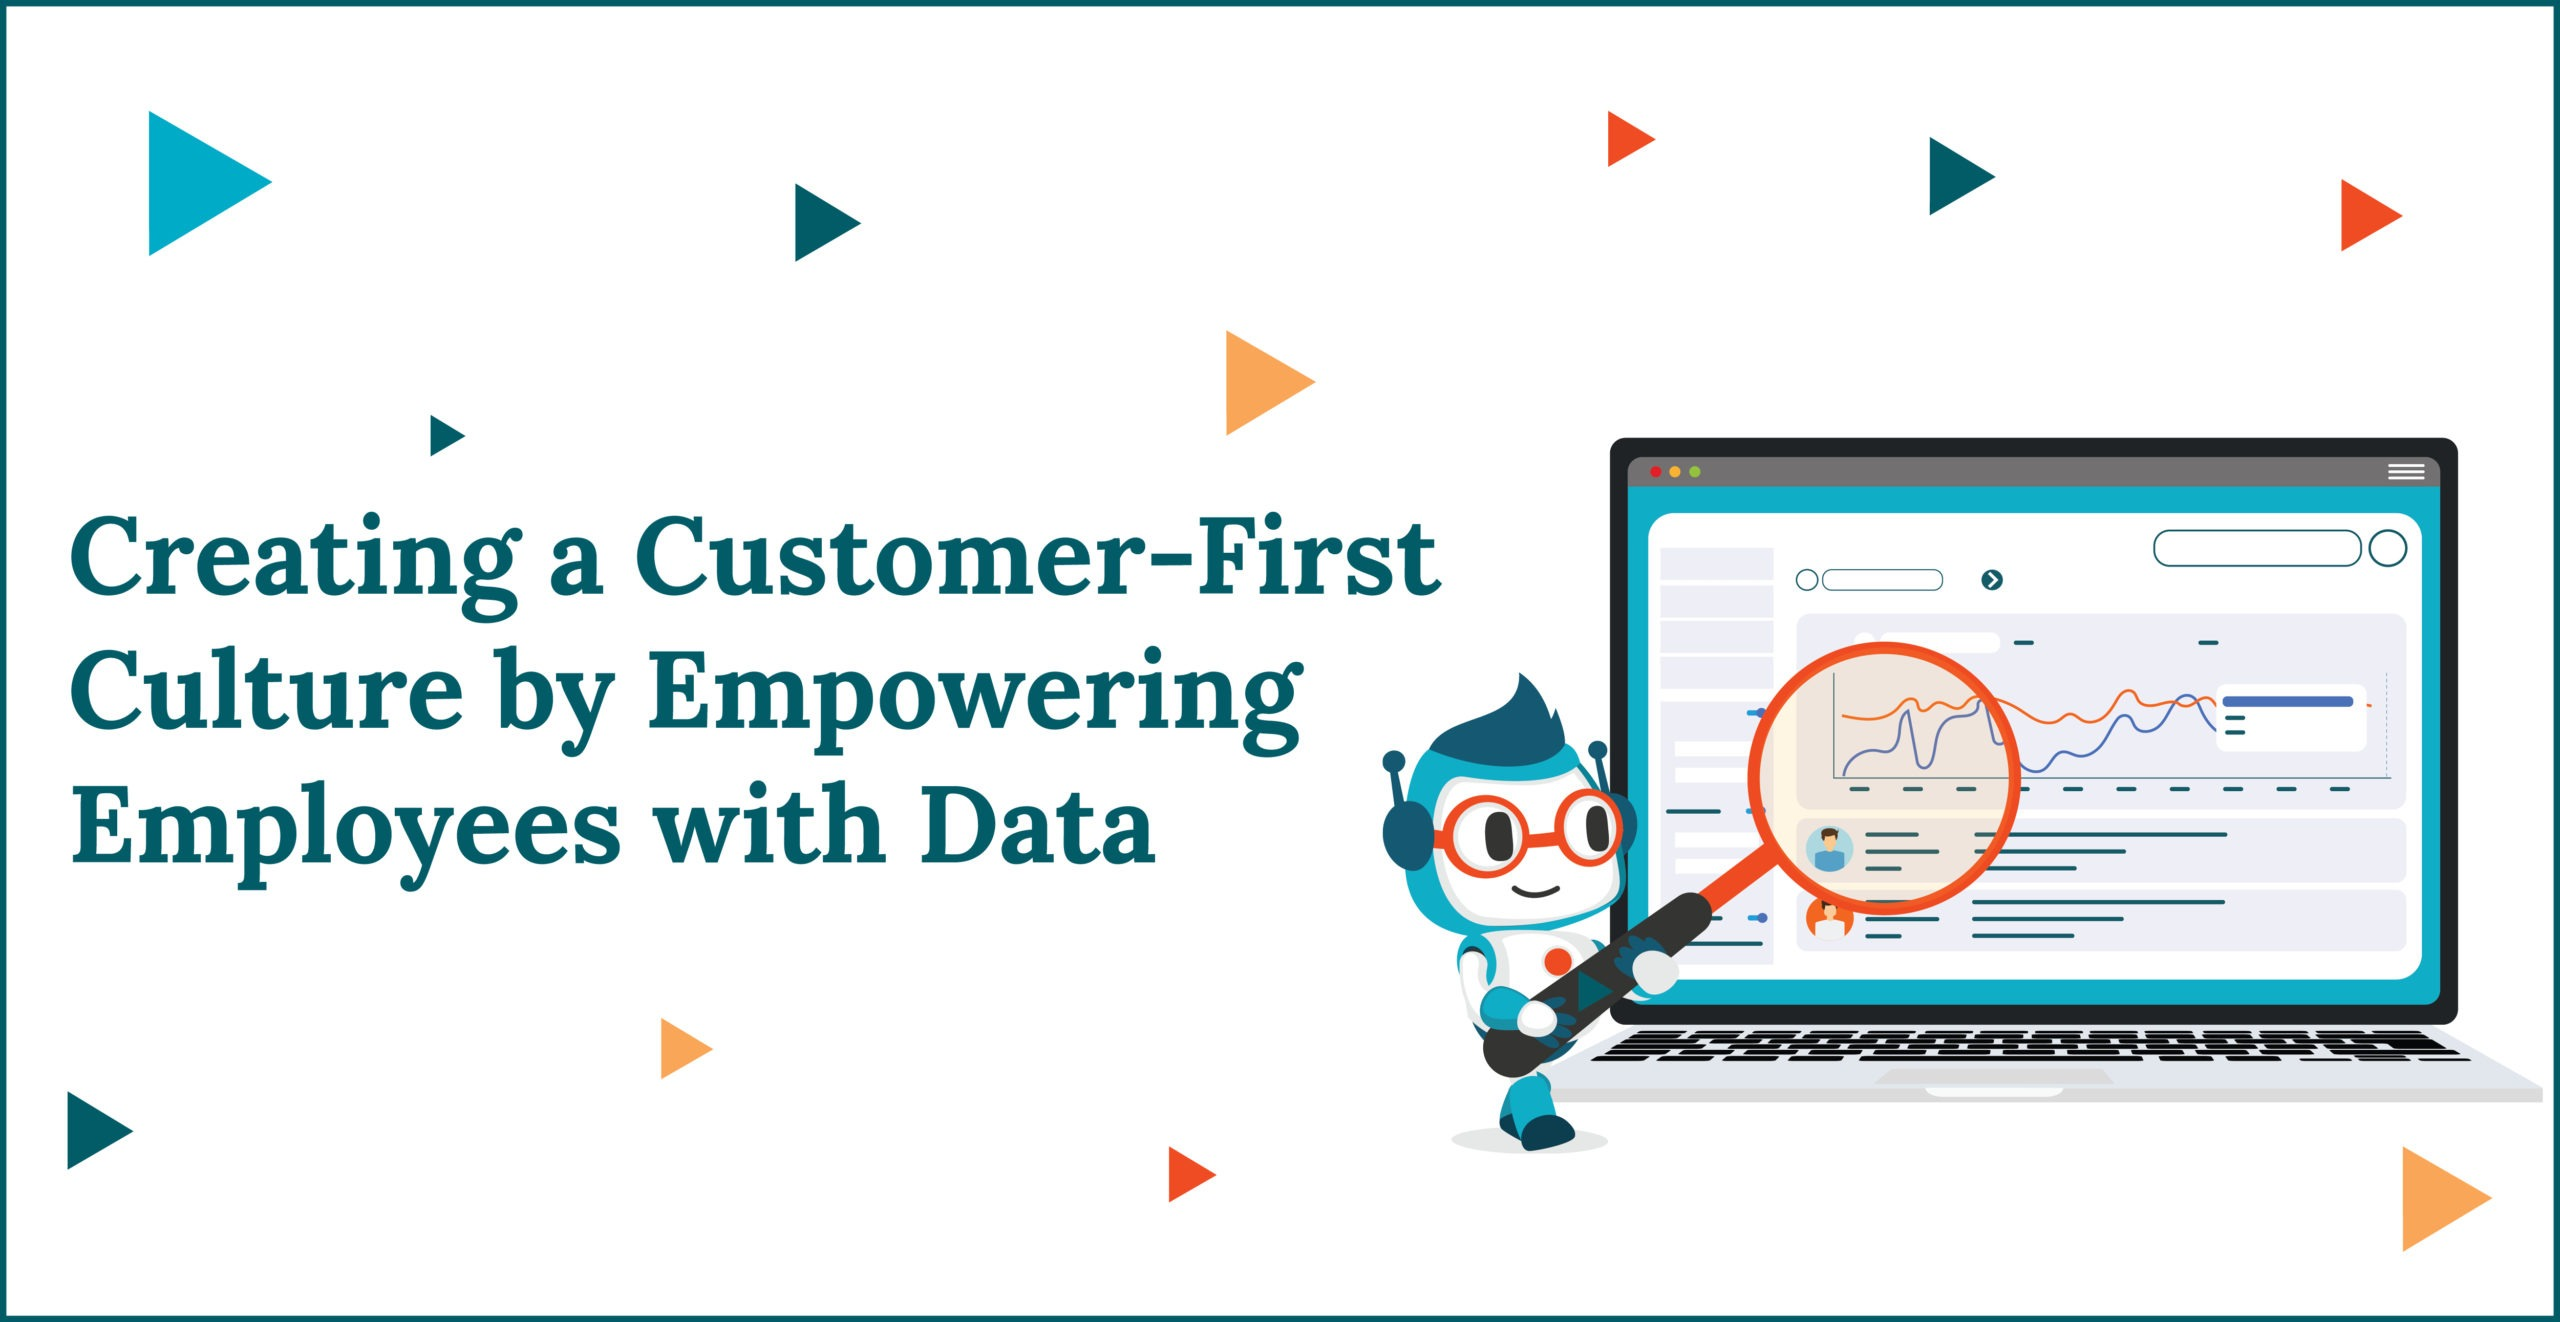 Creating a Customer-First Culture by Empowering Employees with Data